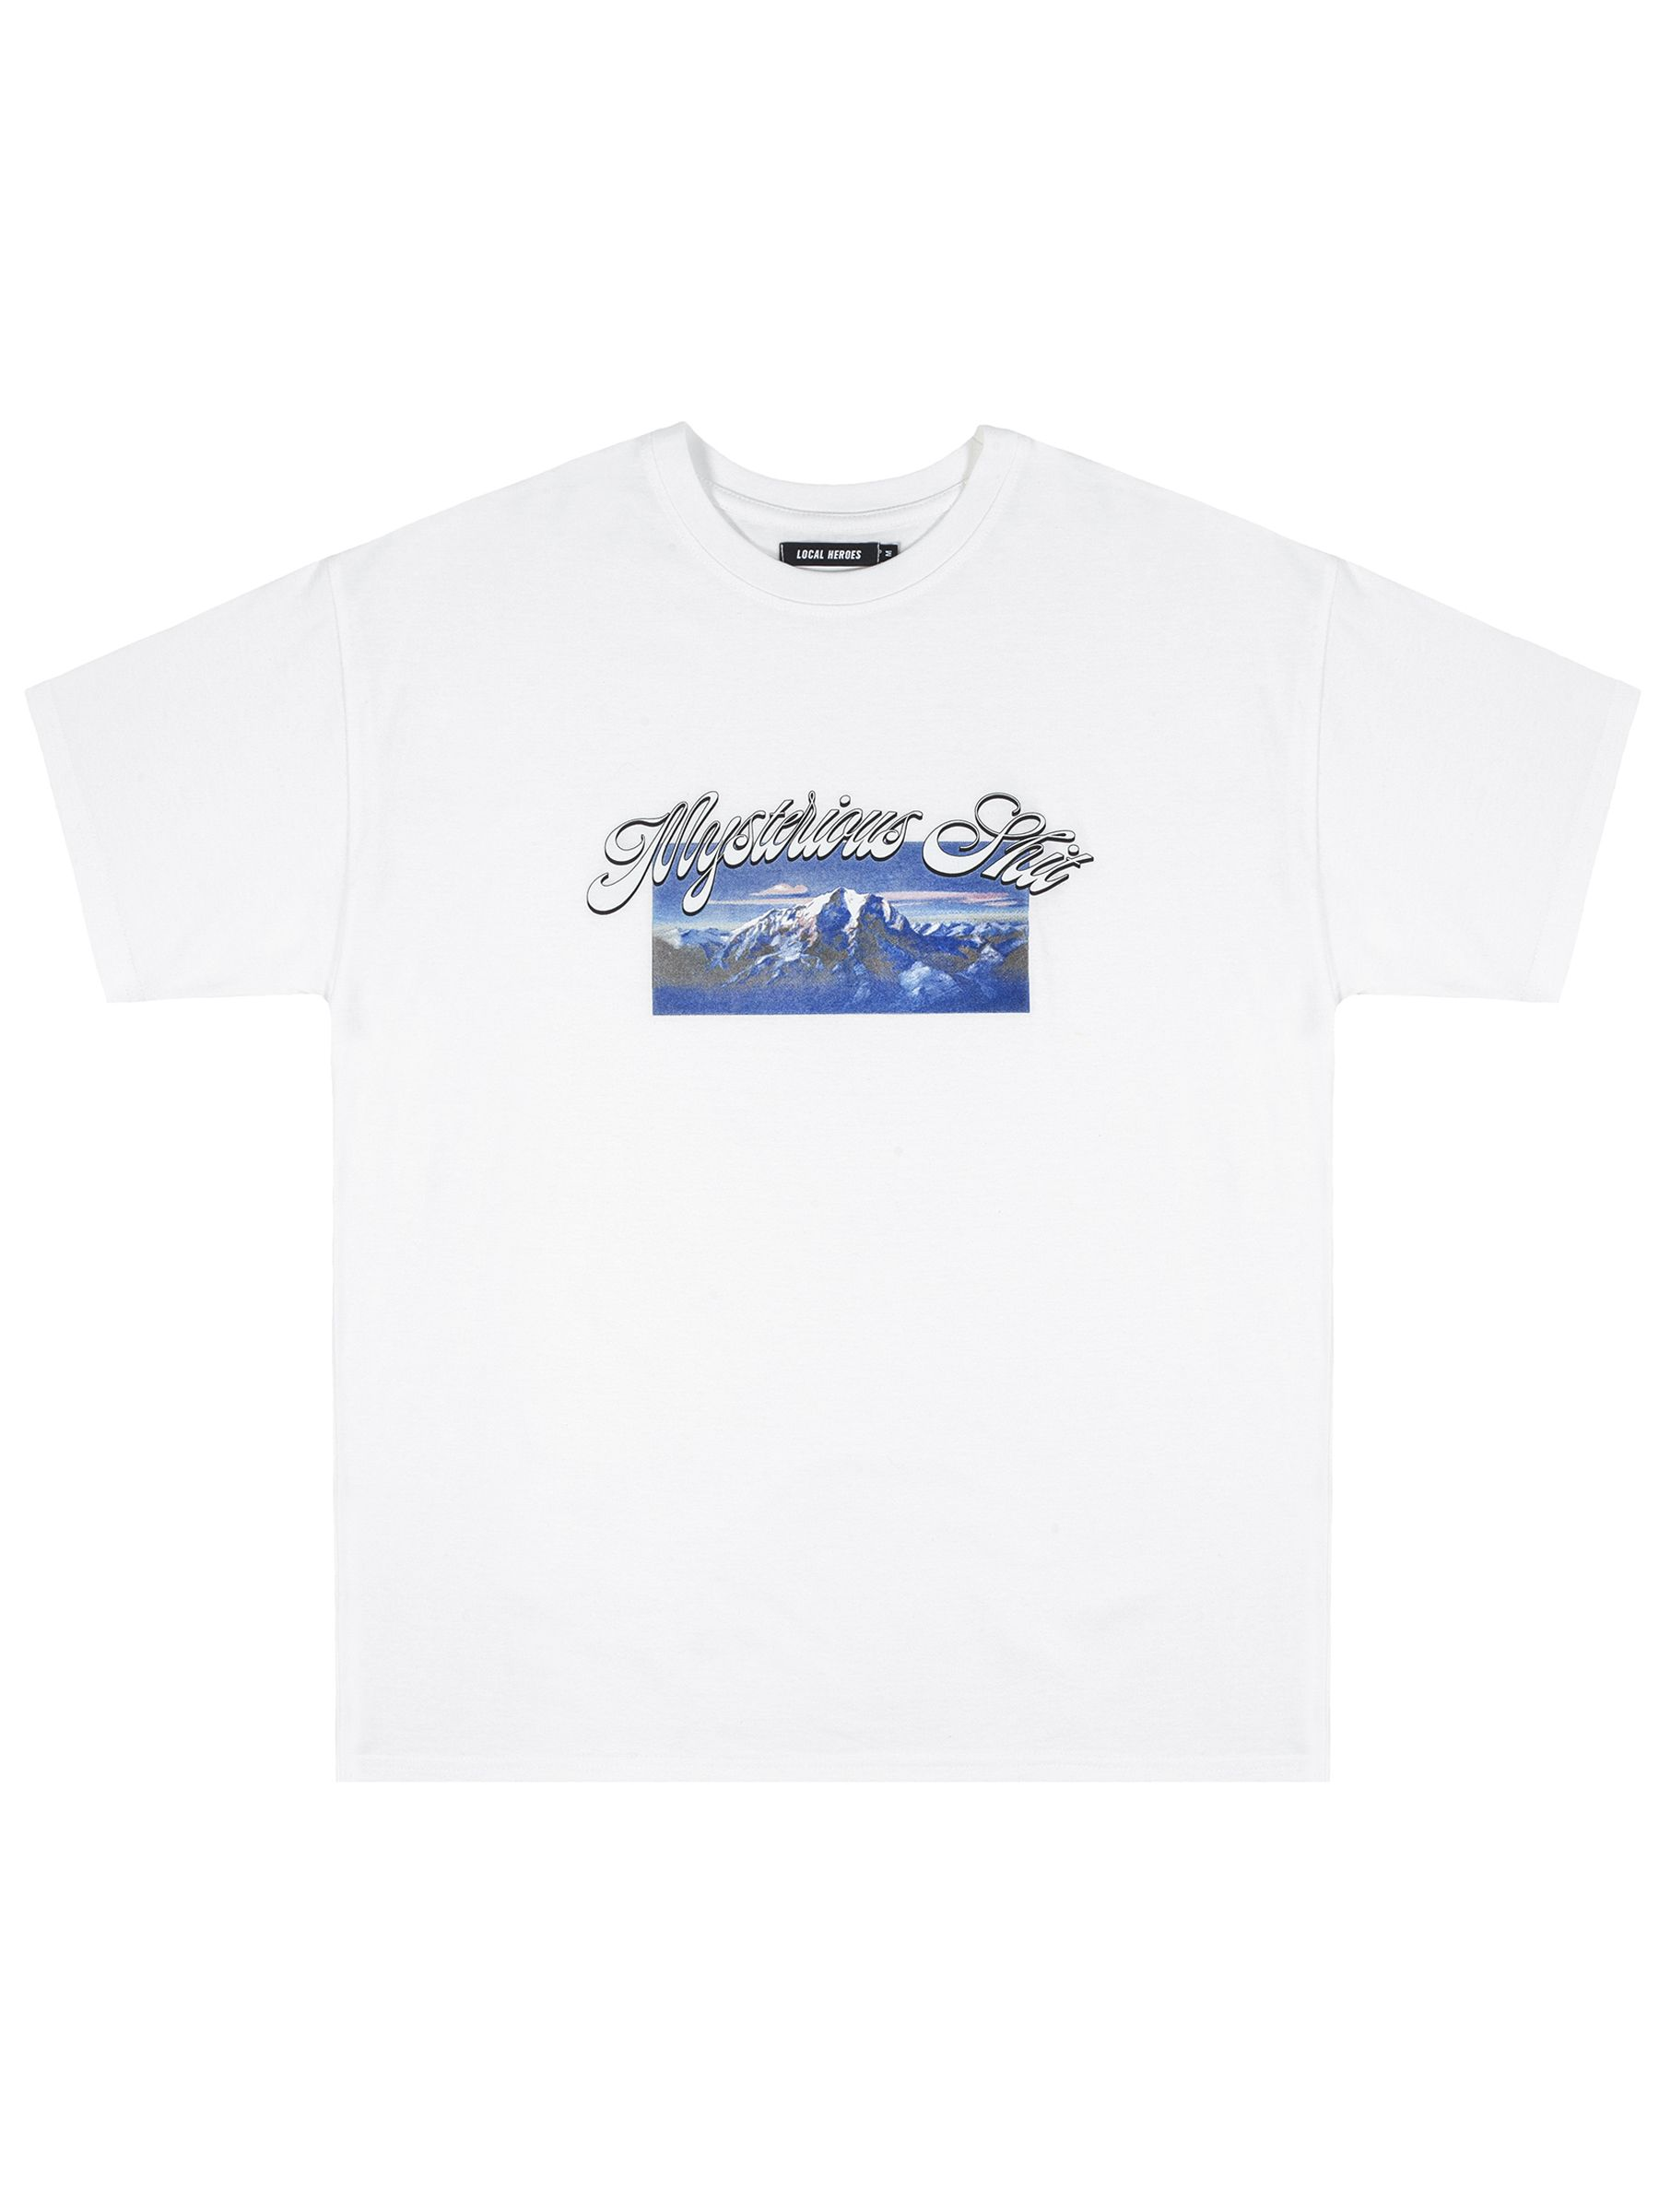 MYSTERIOUS SHIT WHITE TEE